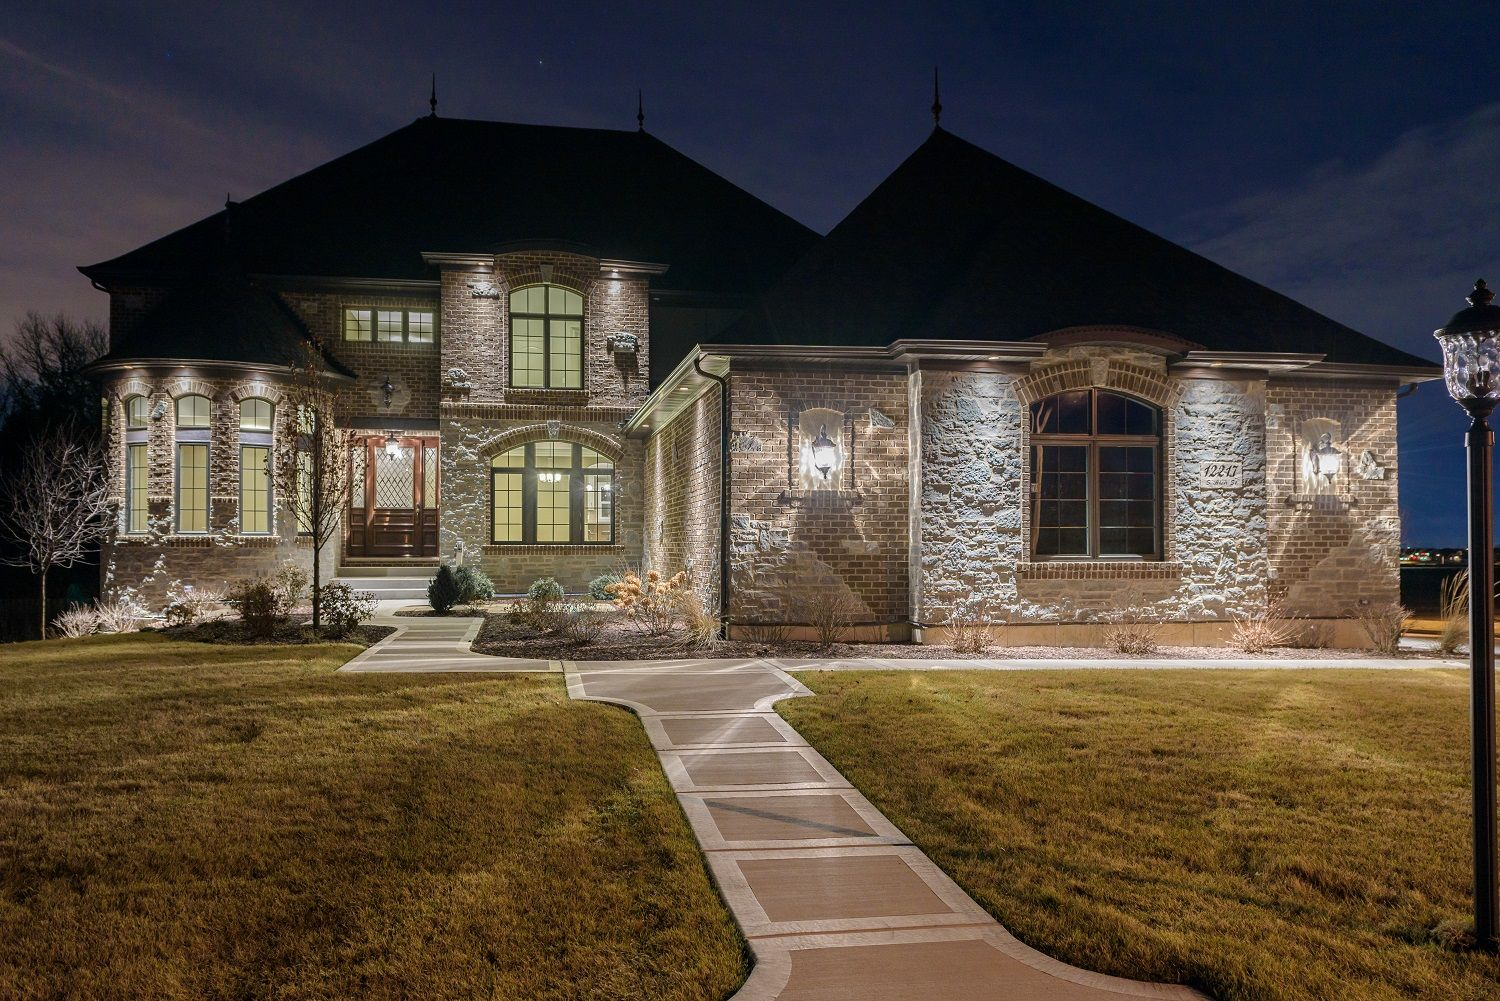 Plainfield Illinois Homes for Sale  Luxury Real Estate  LIV Sothebys International Realty